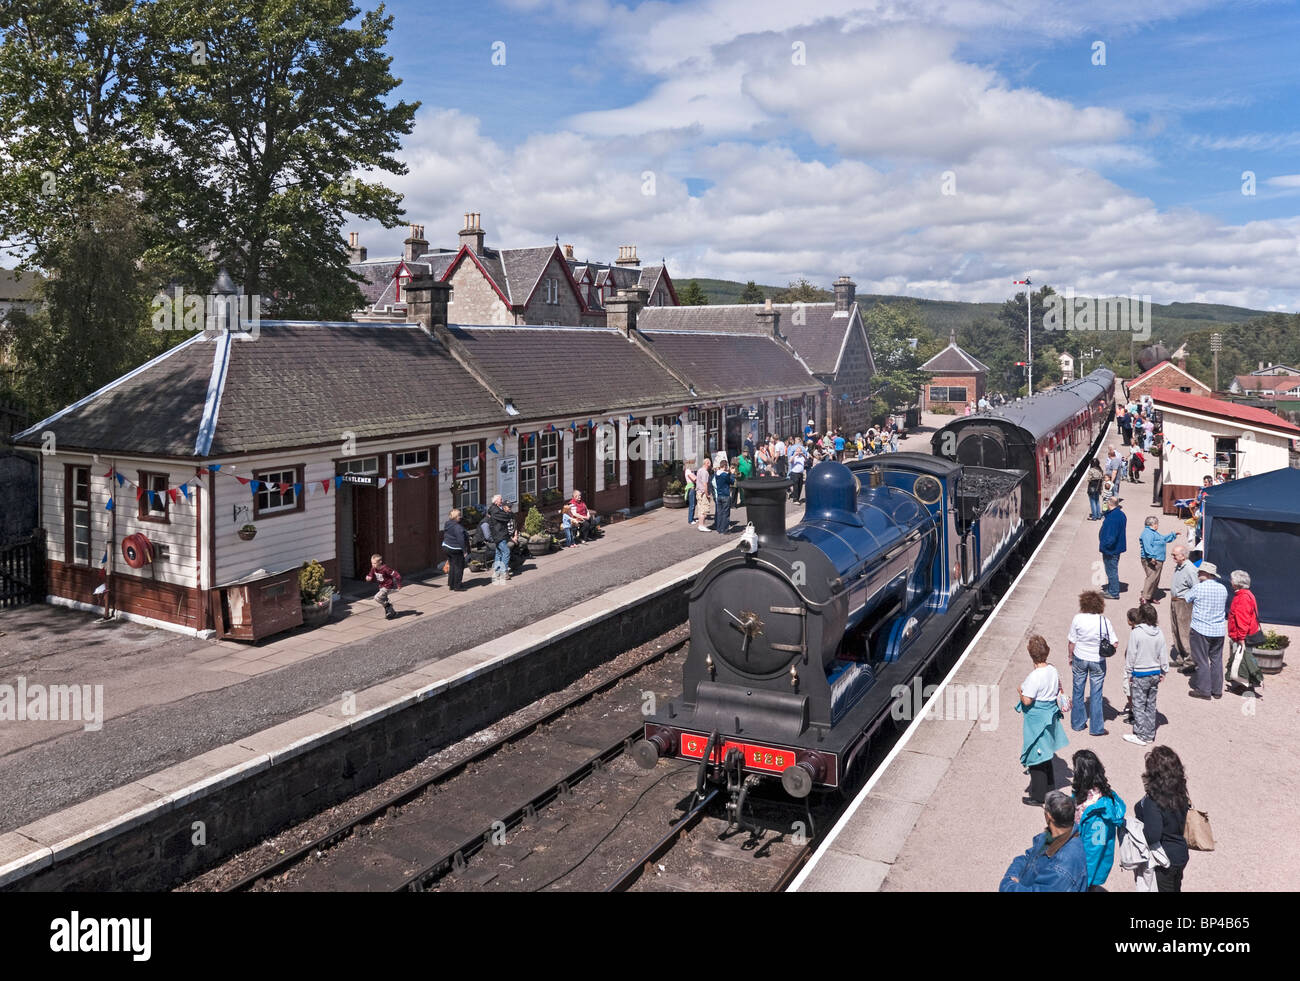 Caledonian Railway restored 0-6-0 steam engine No. 828 arriving at Boat of Garten railway station on the Strathspey - Stock Image